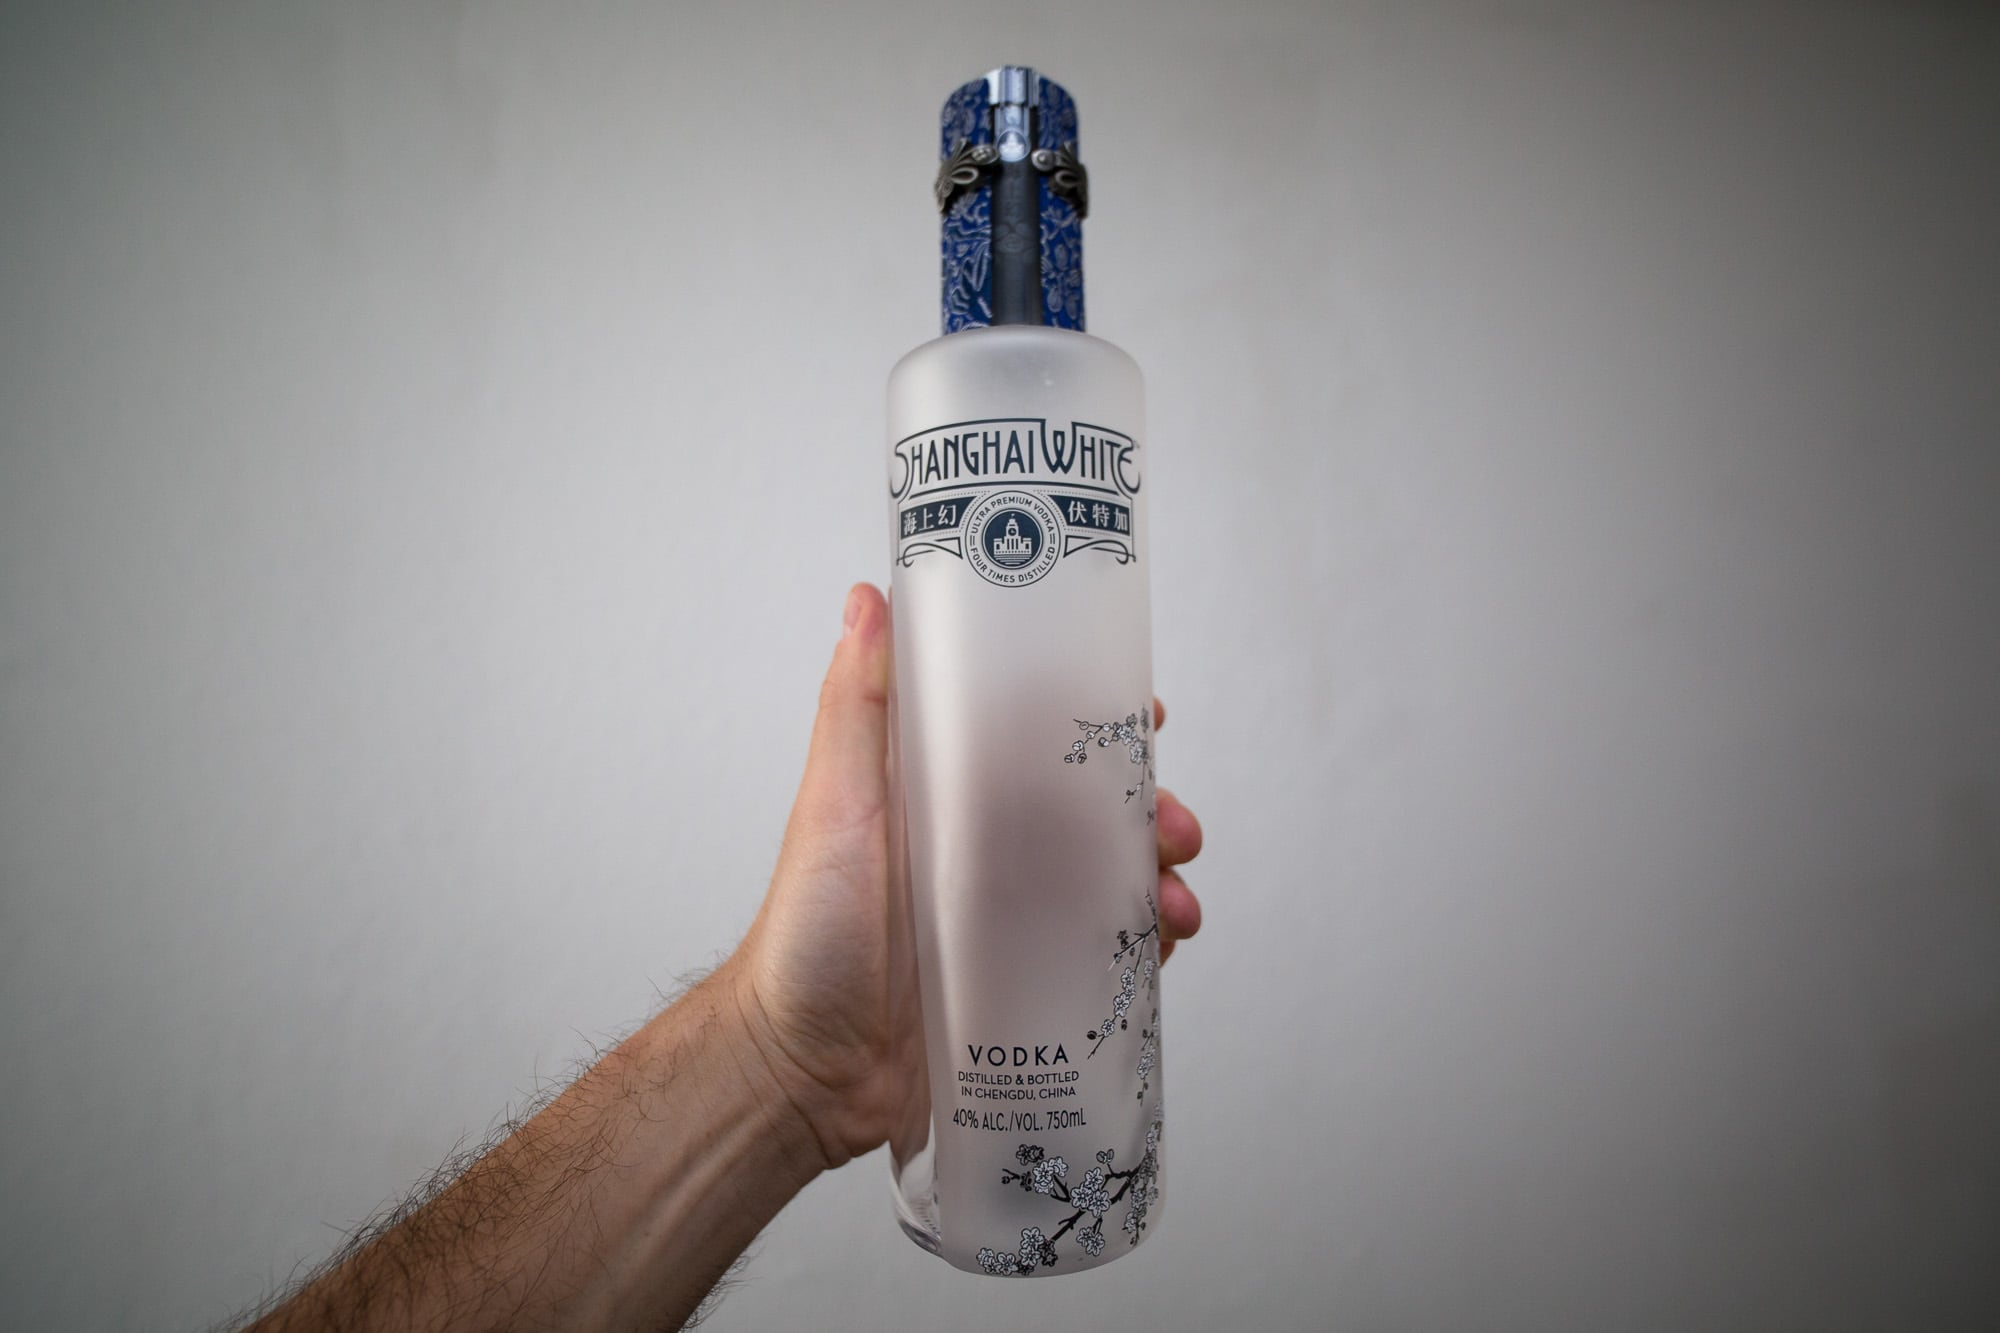 Shanghai White vodka